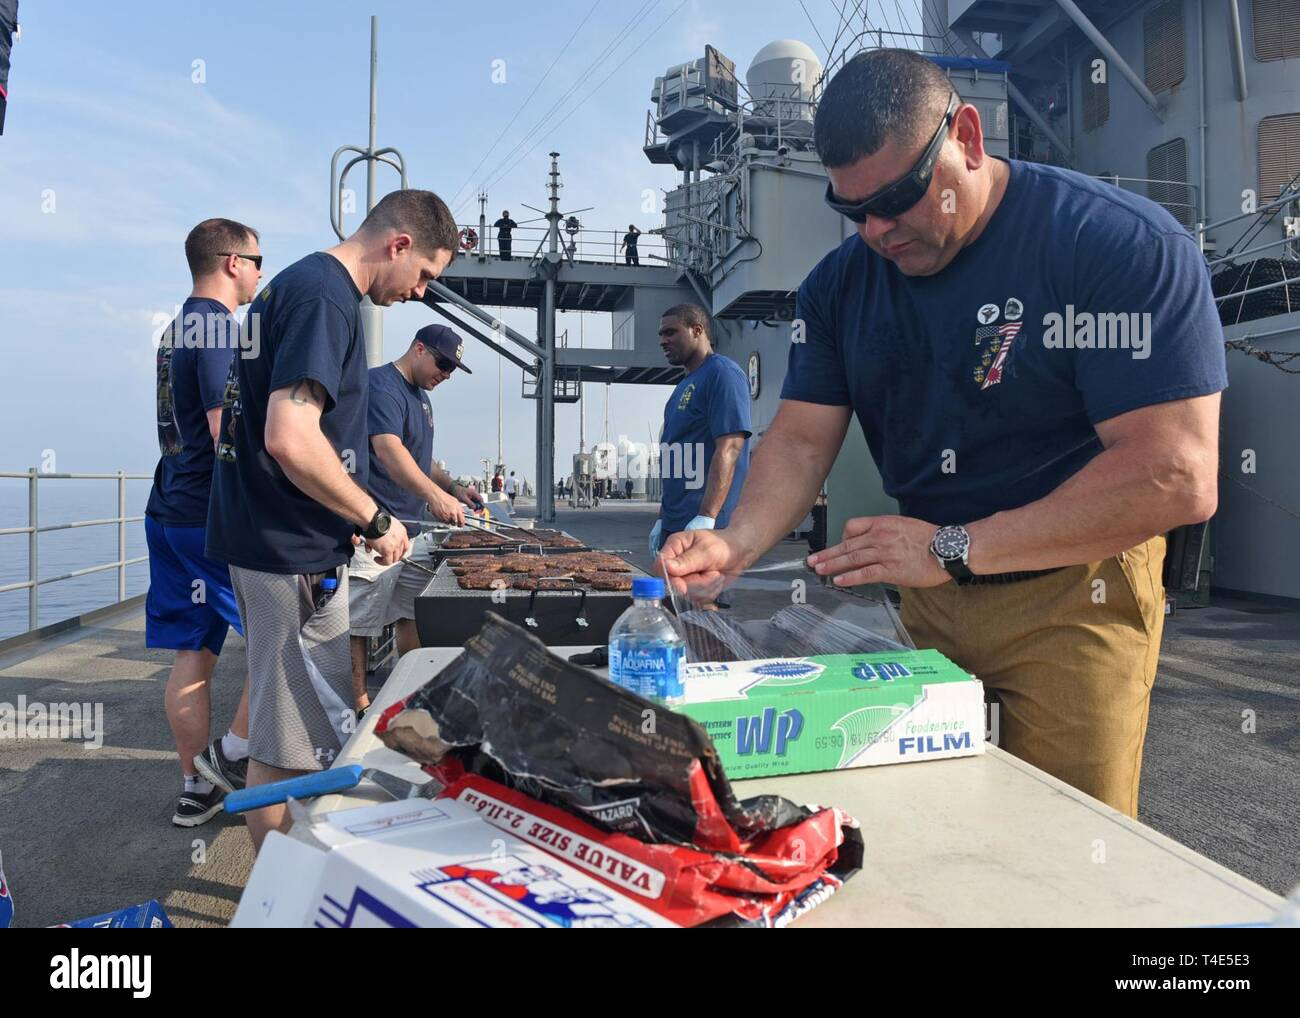 SOUTH CHINA SEA (March 31, 2019) - U.S. 7th Fleet Flagship USS Blue Ridge (LCC 19) chief petty officers prepare food for a steel beach picnic. Blue Ridge is the oldest operational ship in the Navy, and as 7th Fleet command ship, is responsible for fostering relationships within the Indo-Pacific Region. - Stock Image